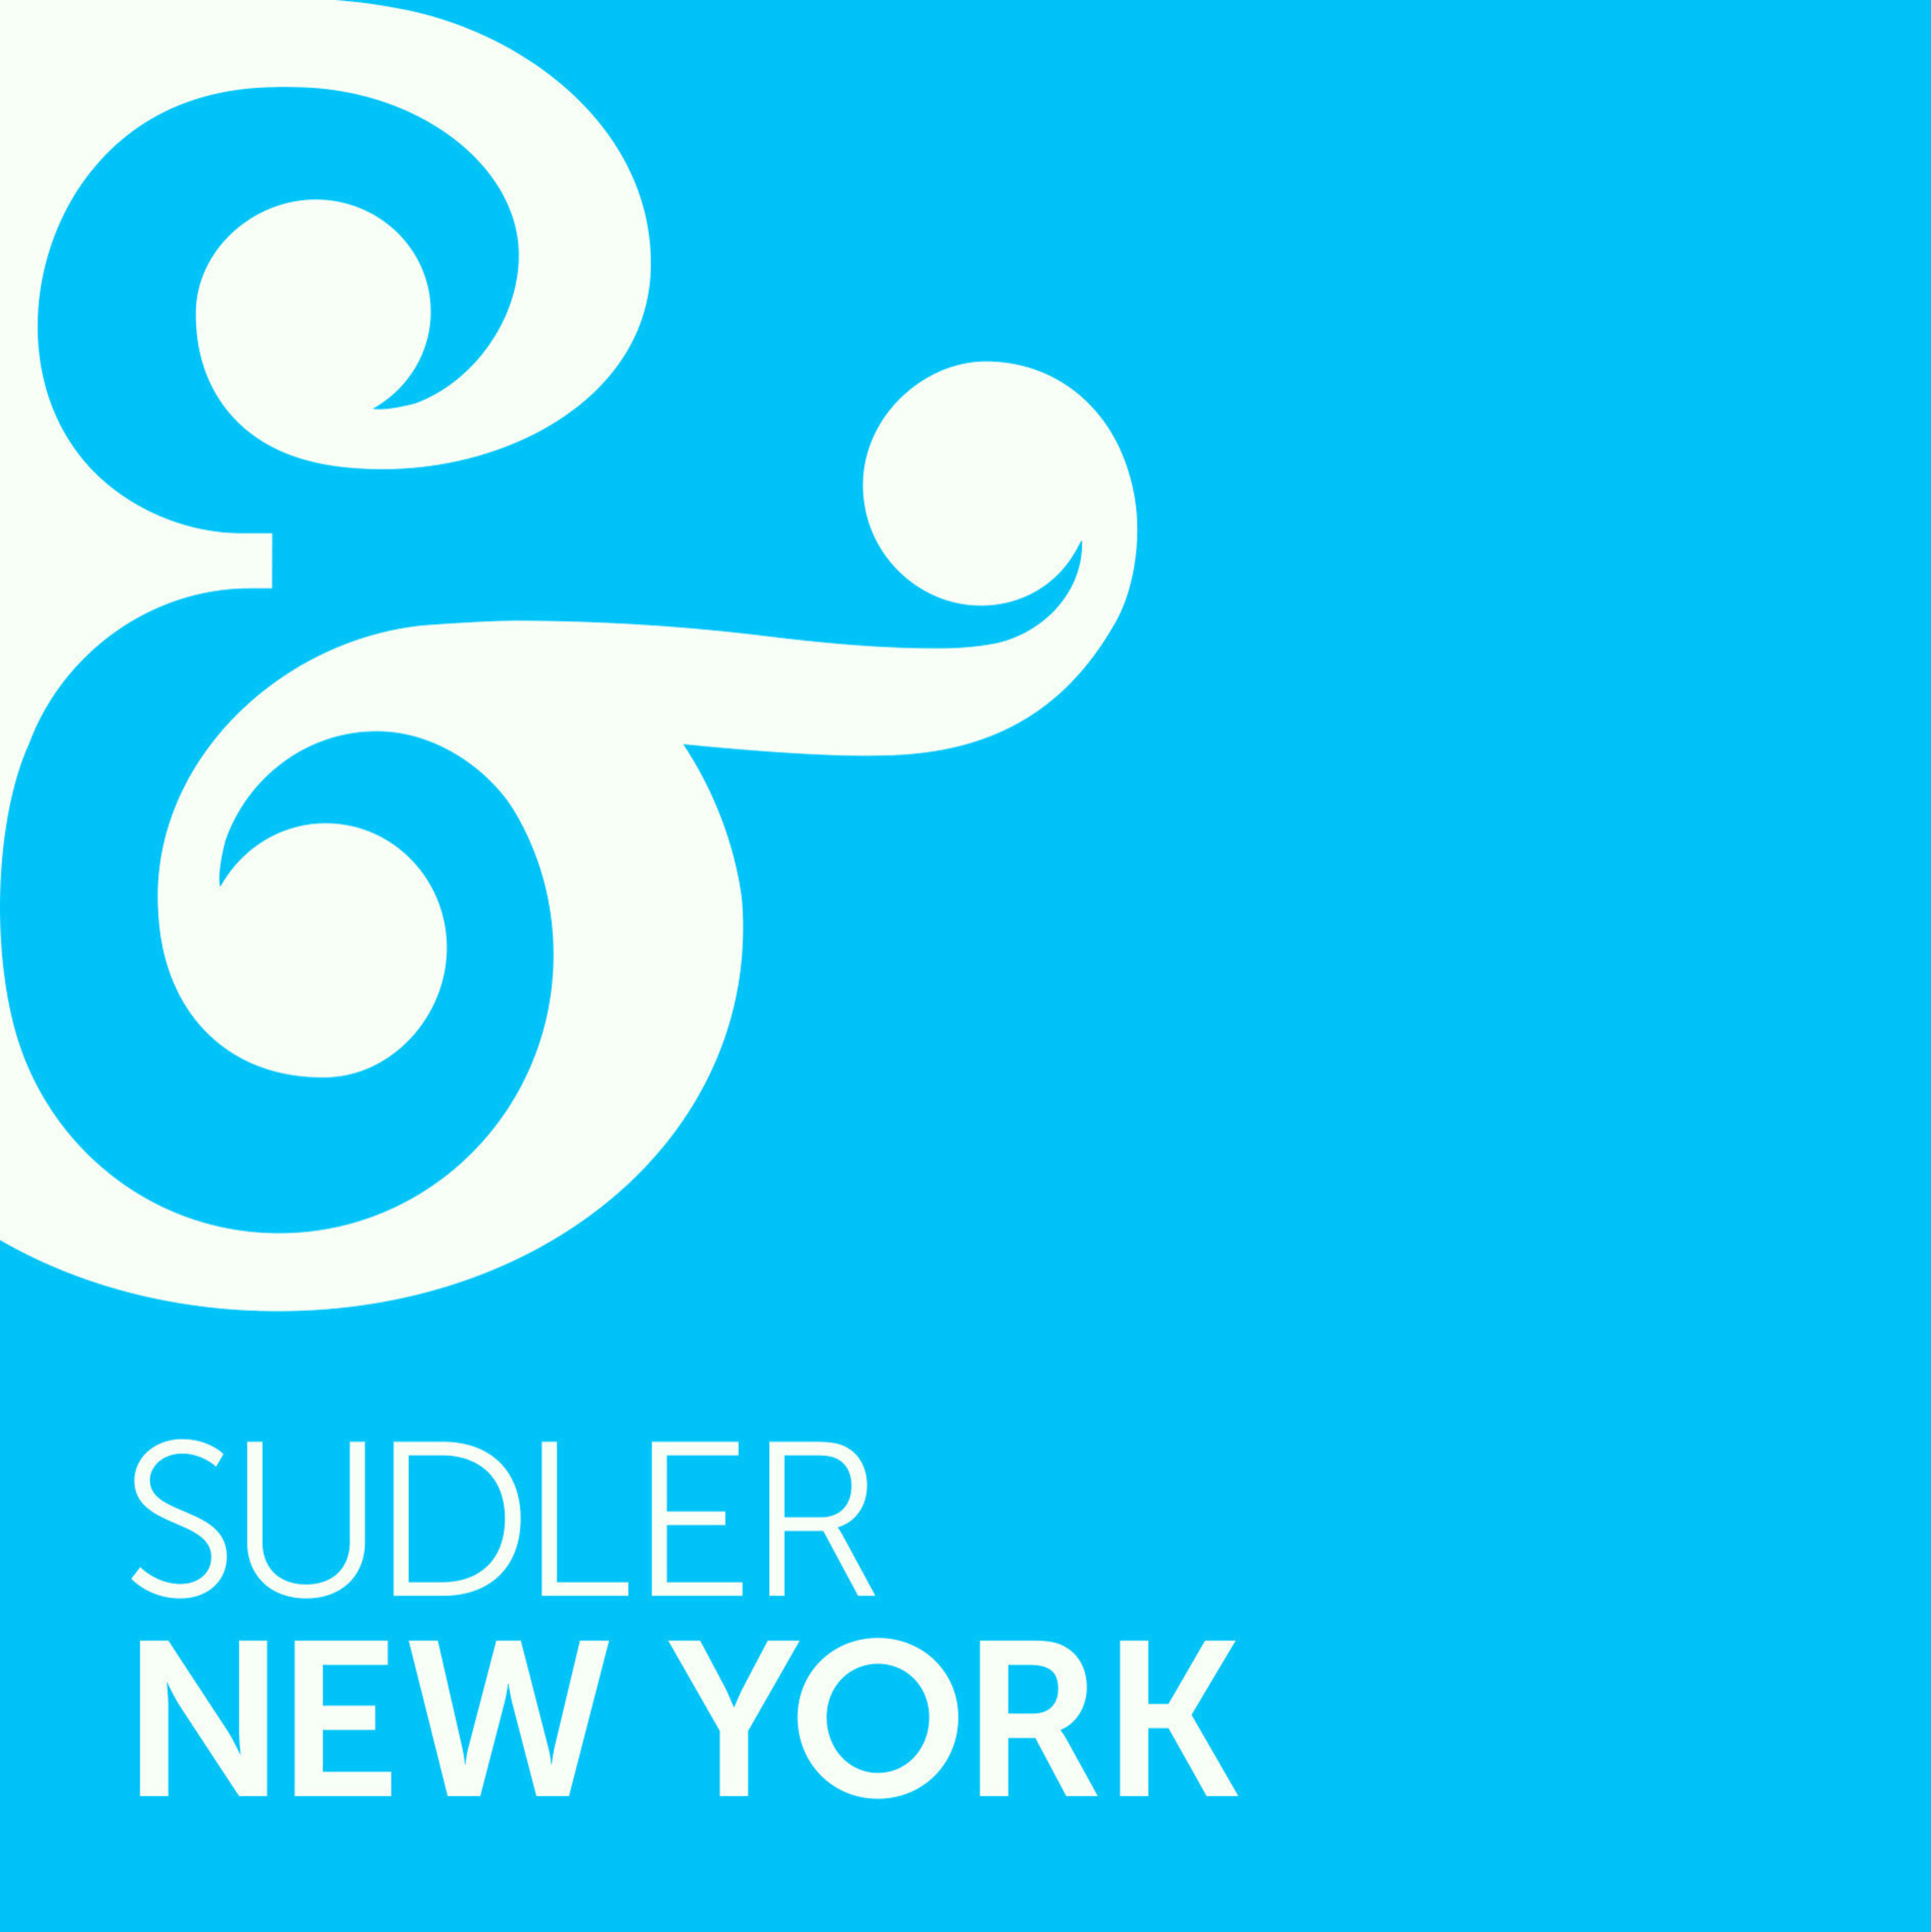 Sudler New York